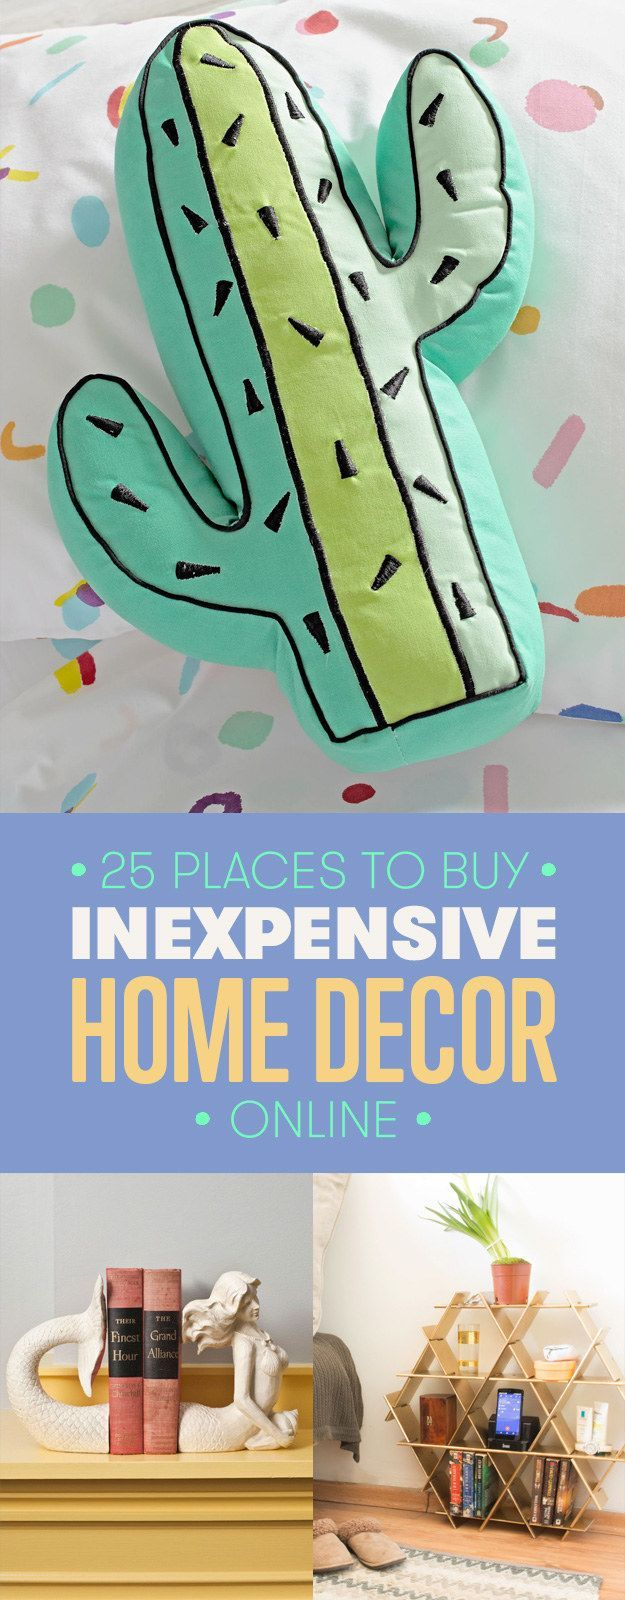 25 inexpensive places to shop for home decor online - Home Decor Online Stores